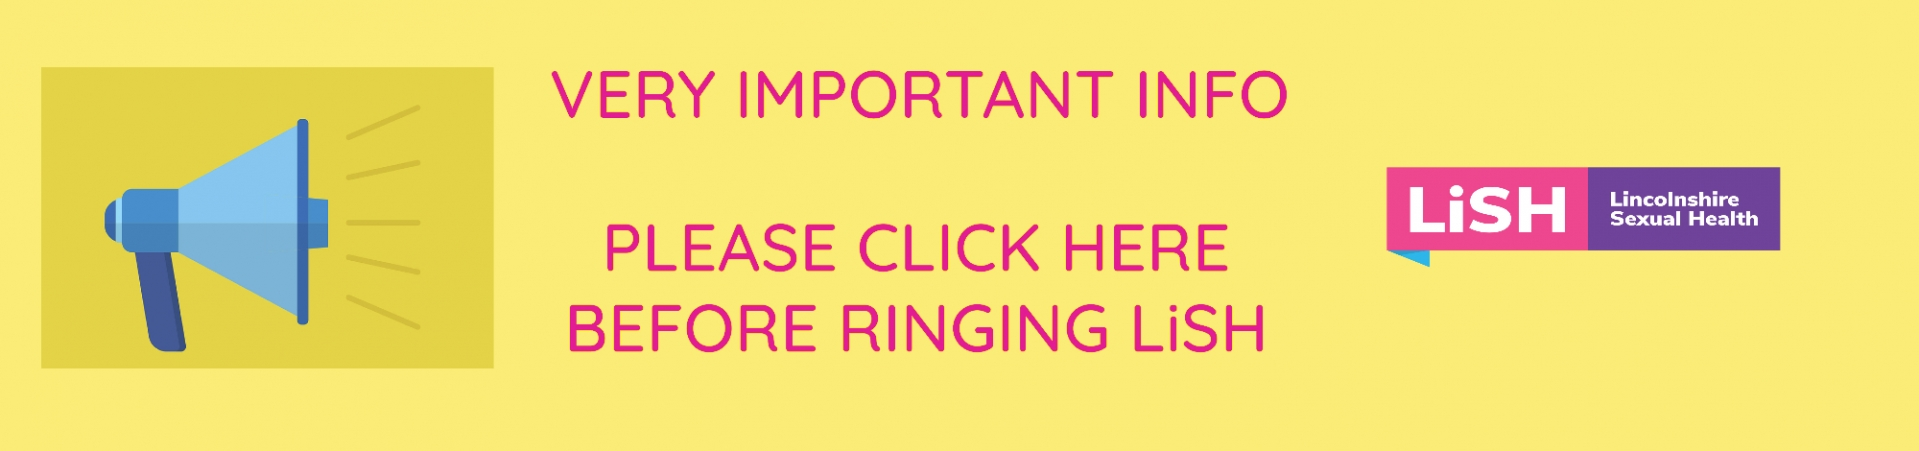 Please follow this link for important information before ringing LiSH